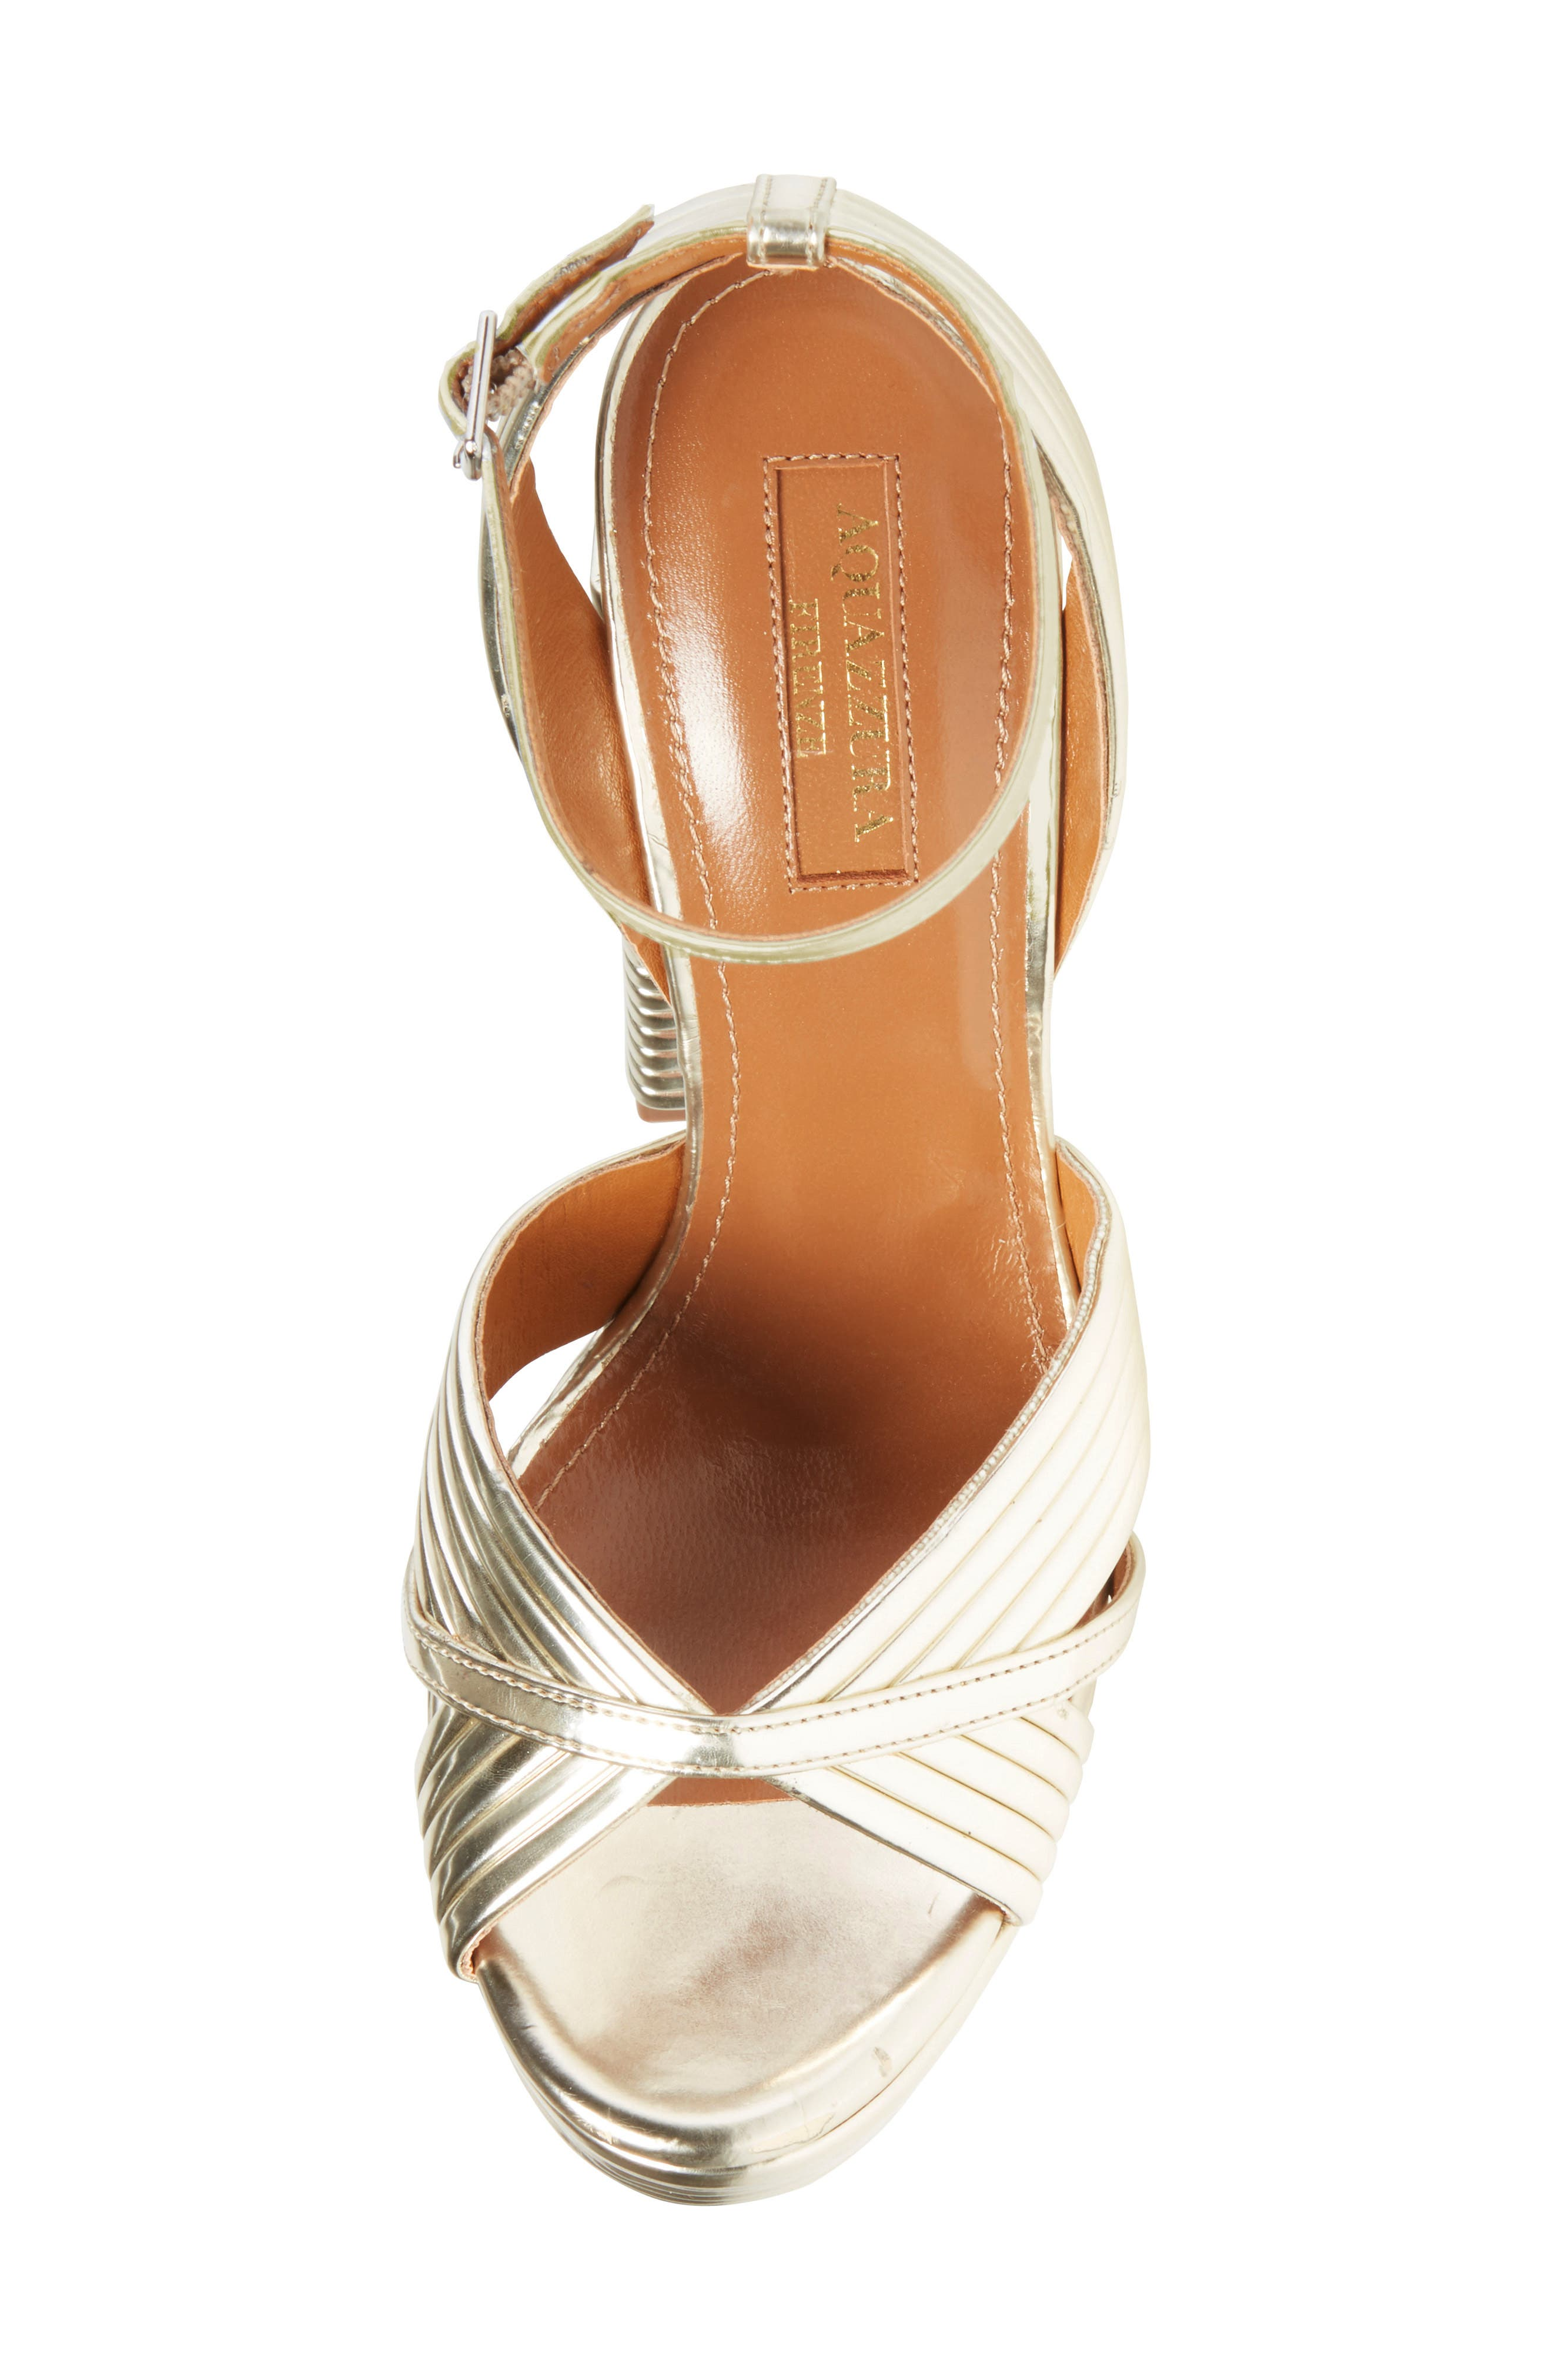 Sundance Platform Sandal,                             Alternate thumbnail 5, color,                             Light Gold